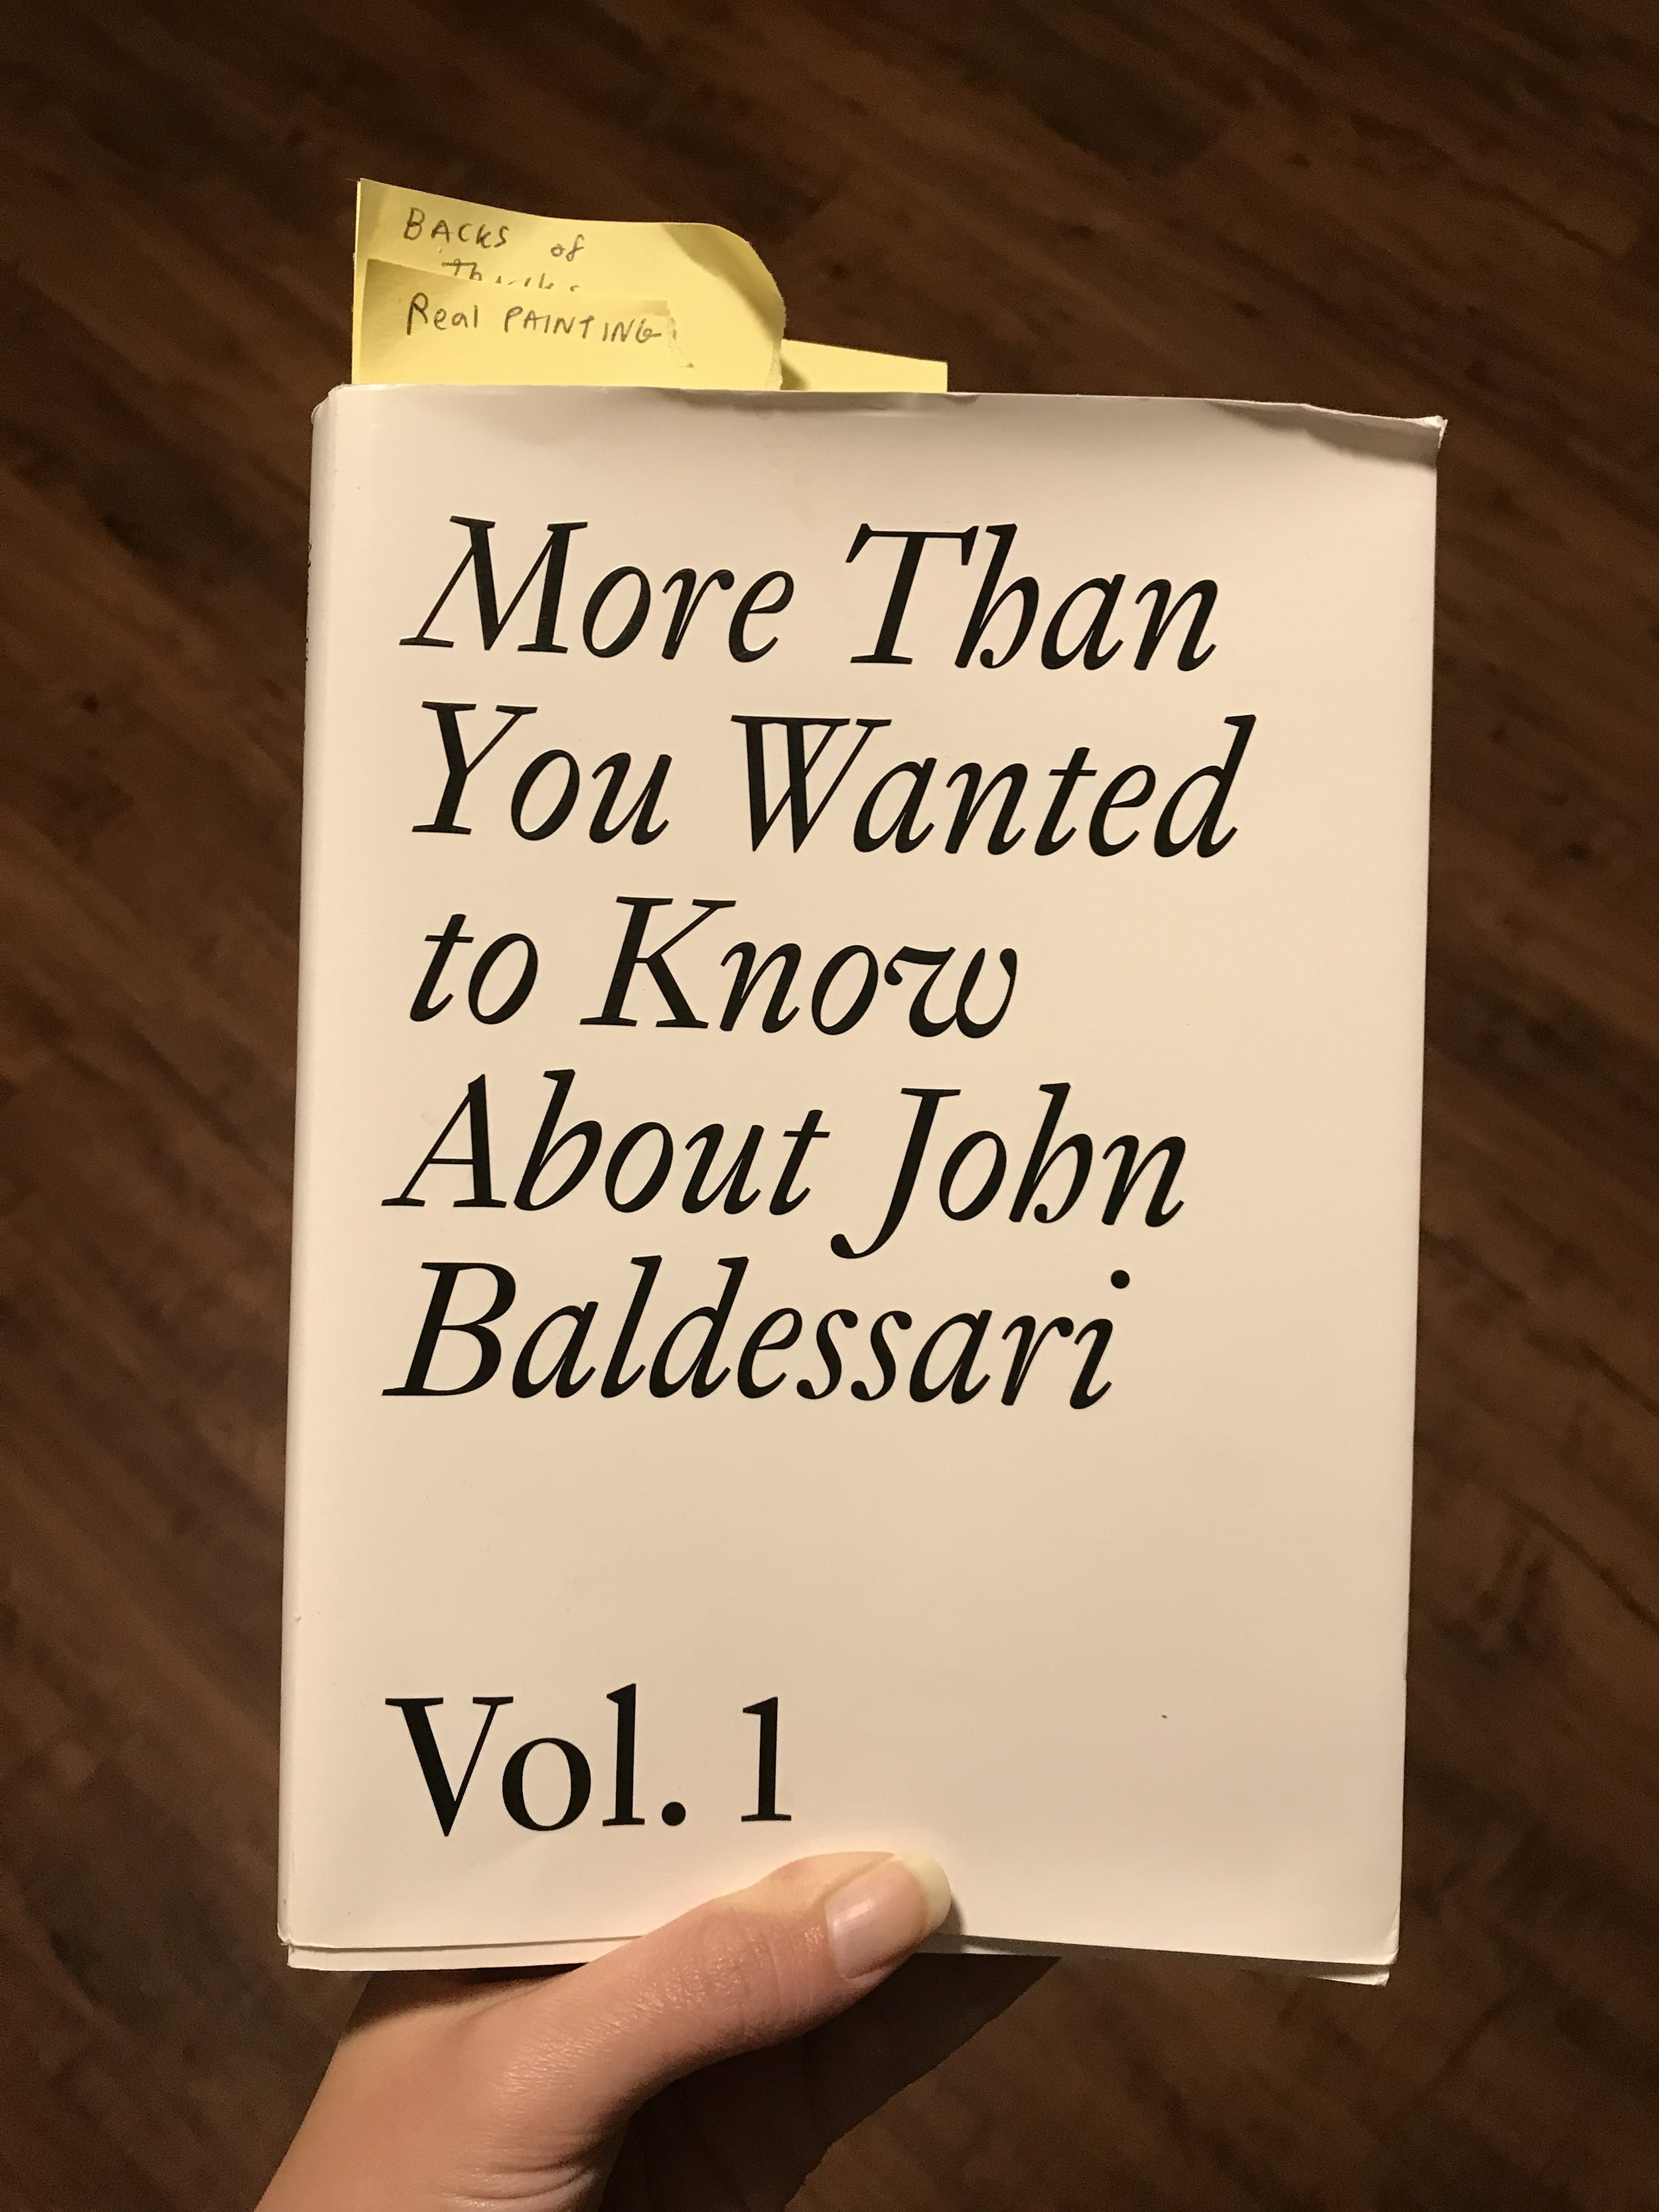 I highly recommend this book, it's great for thinking.